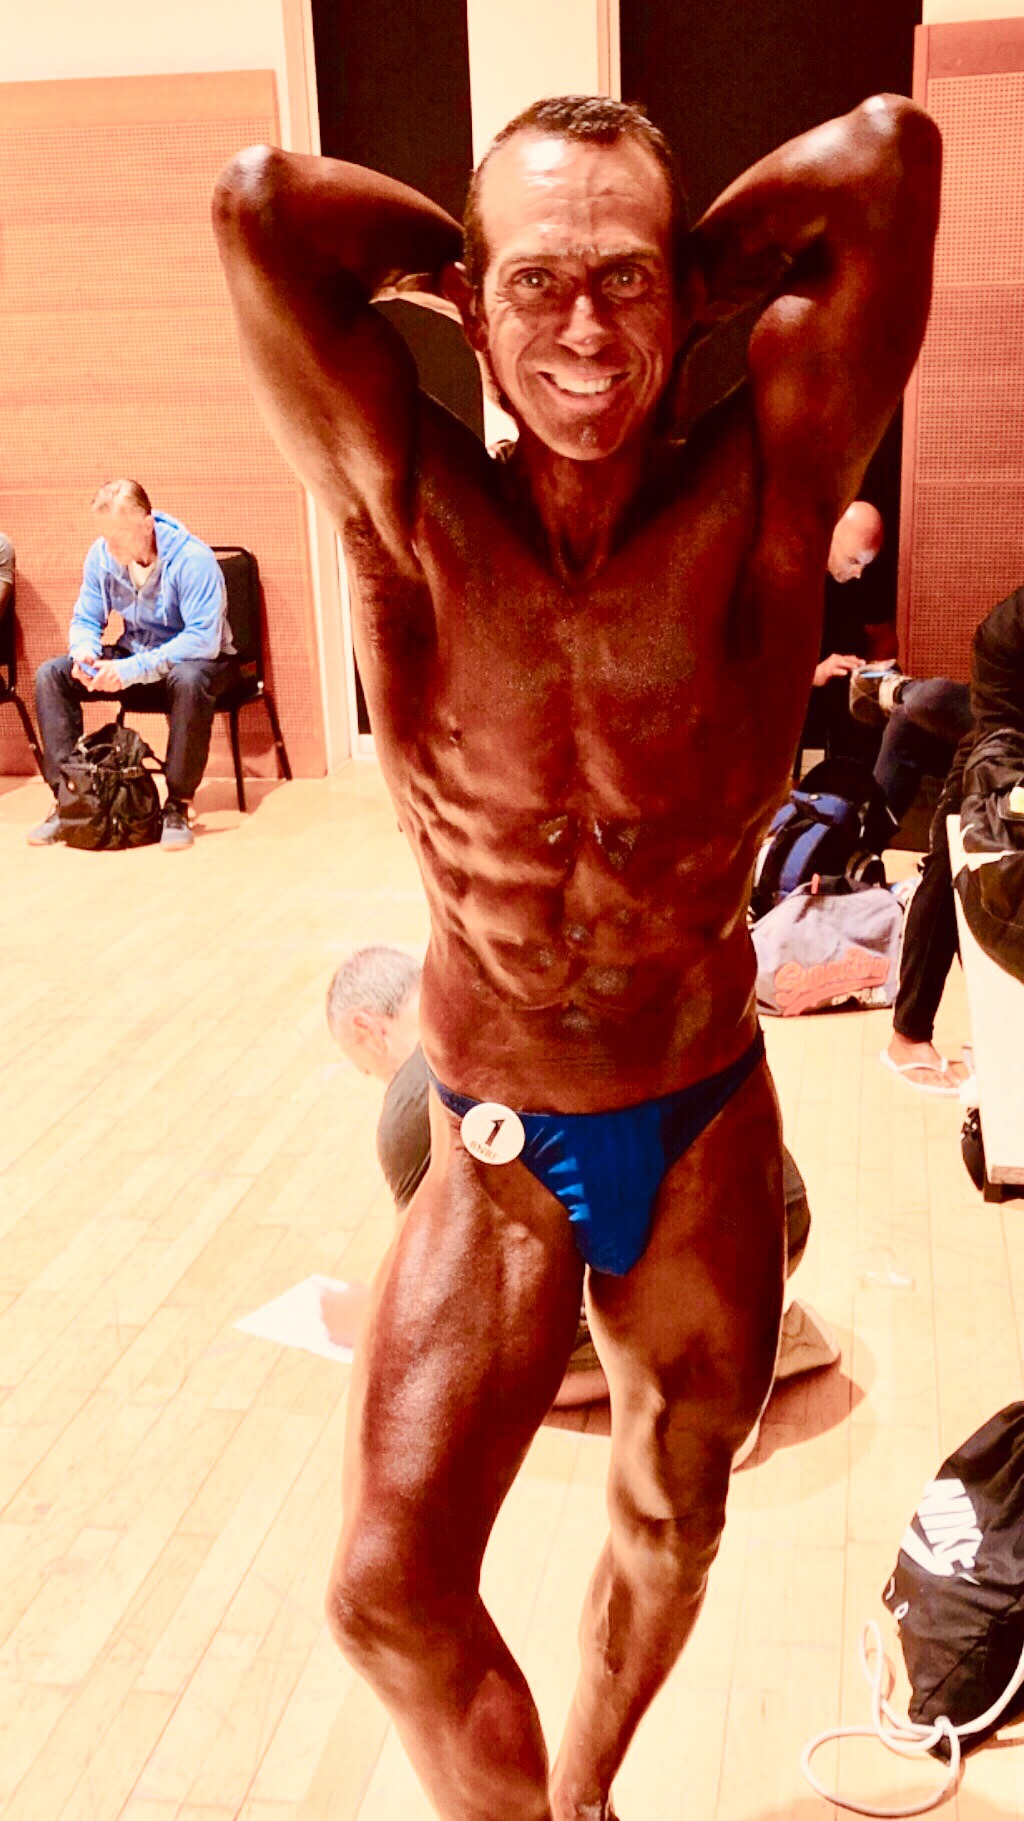 image of Tim Sharp Places 10th Over 50 in the 2019 BNBF British